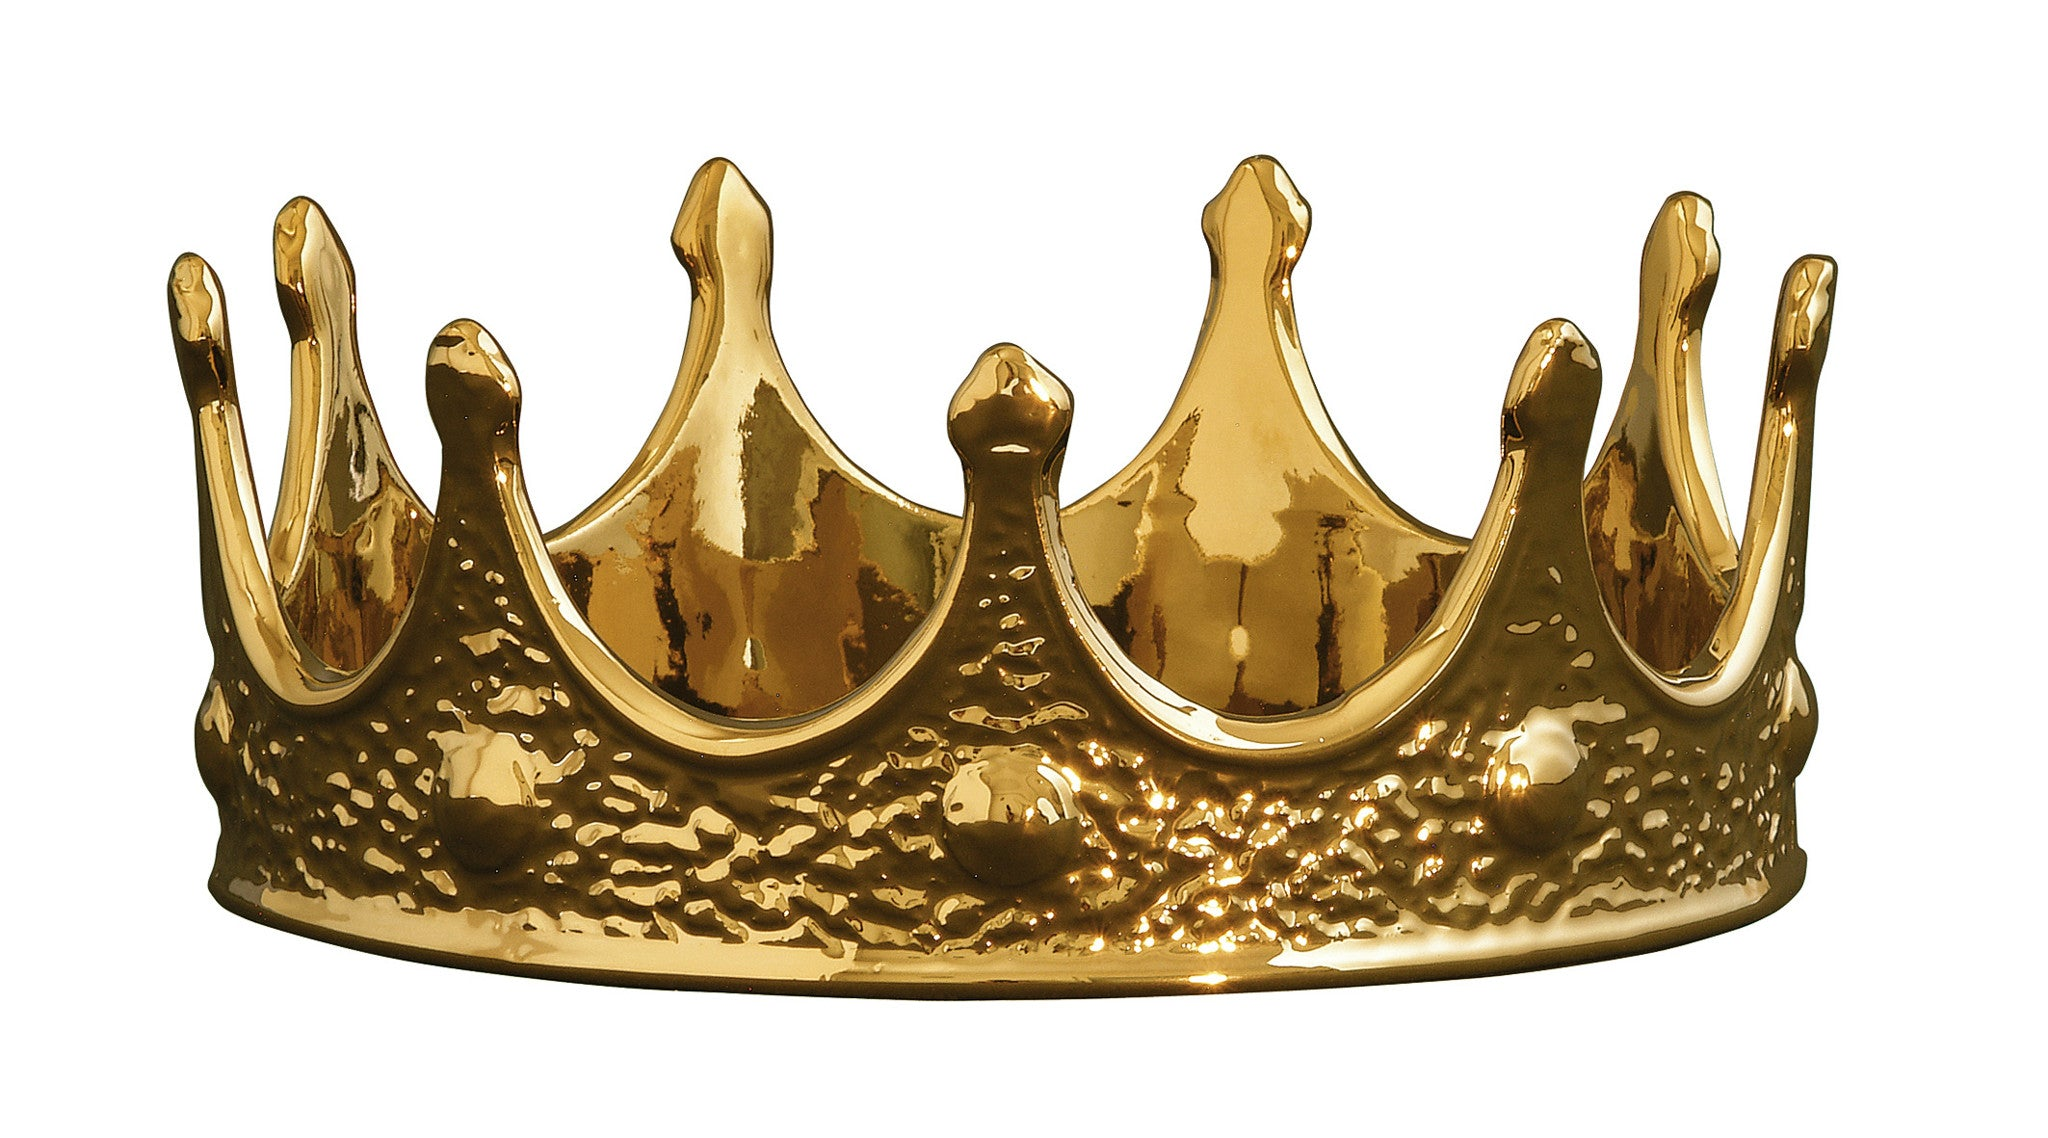 Limited Gold Edition Crown Design By Seletti Burke Decor